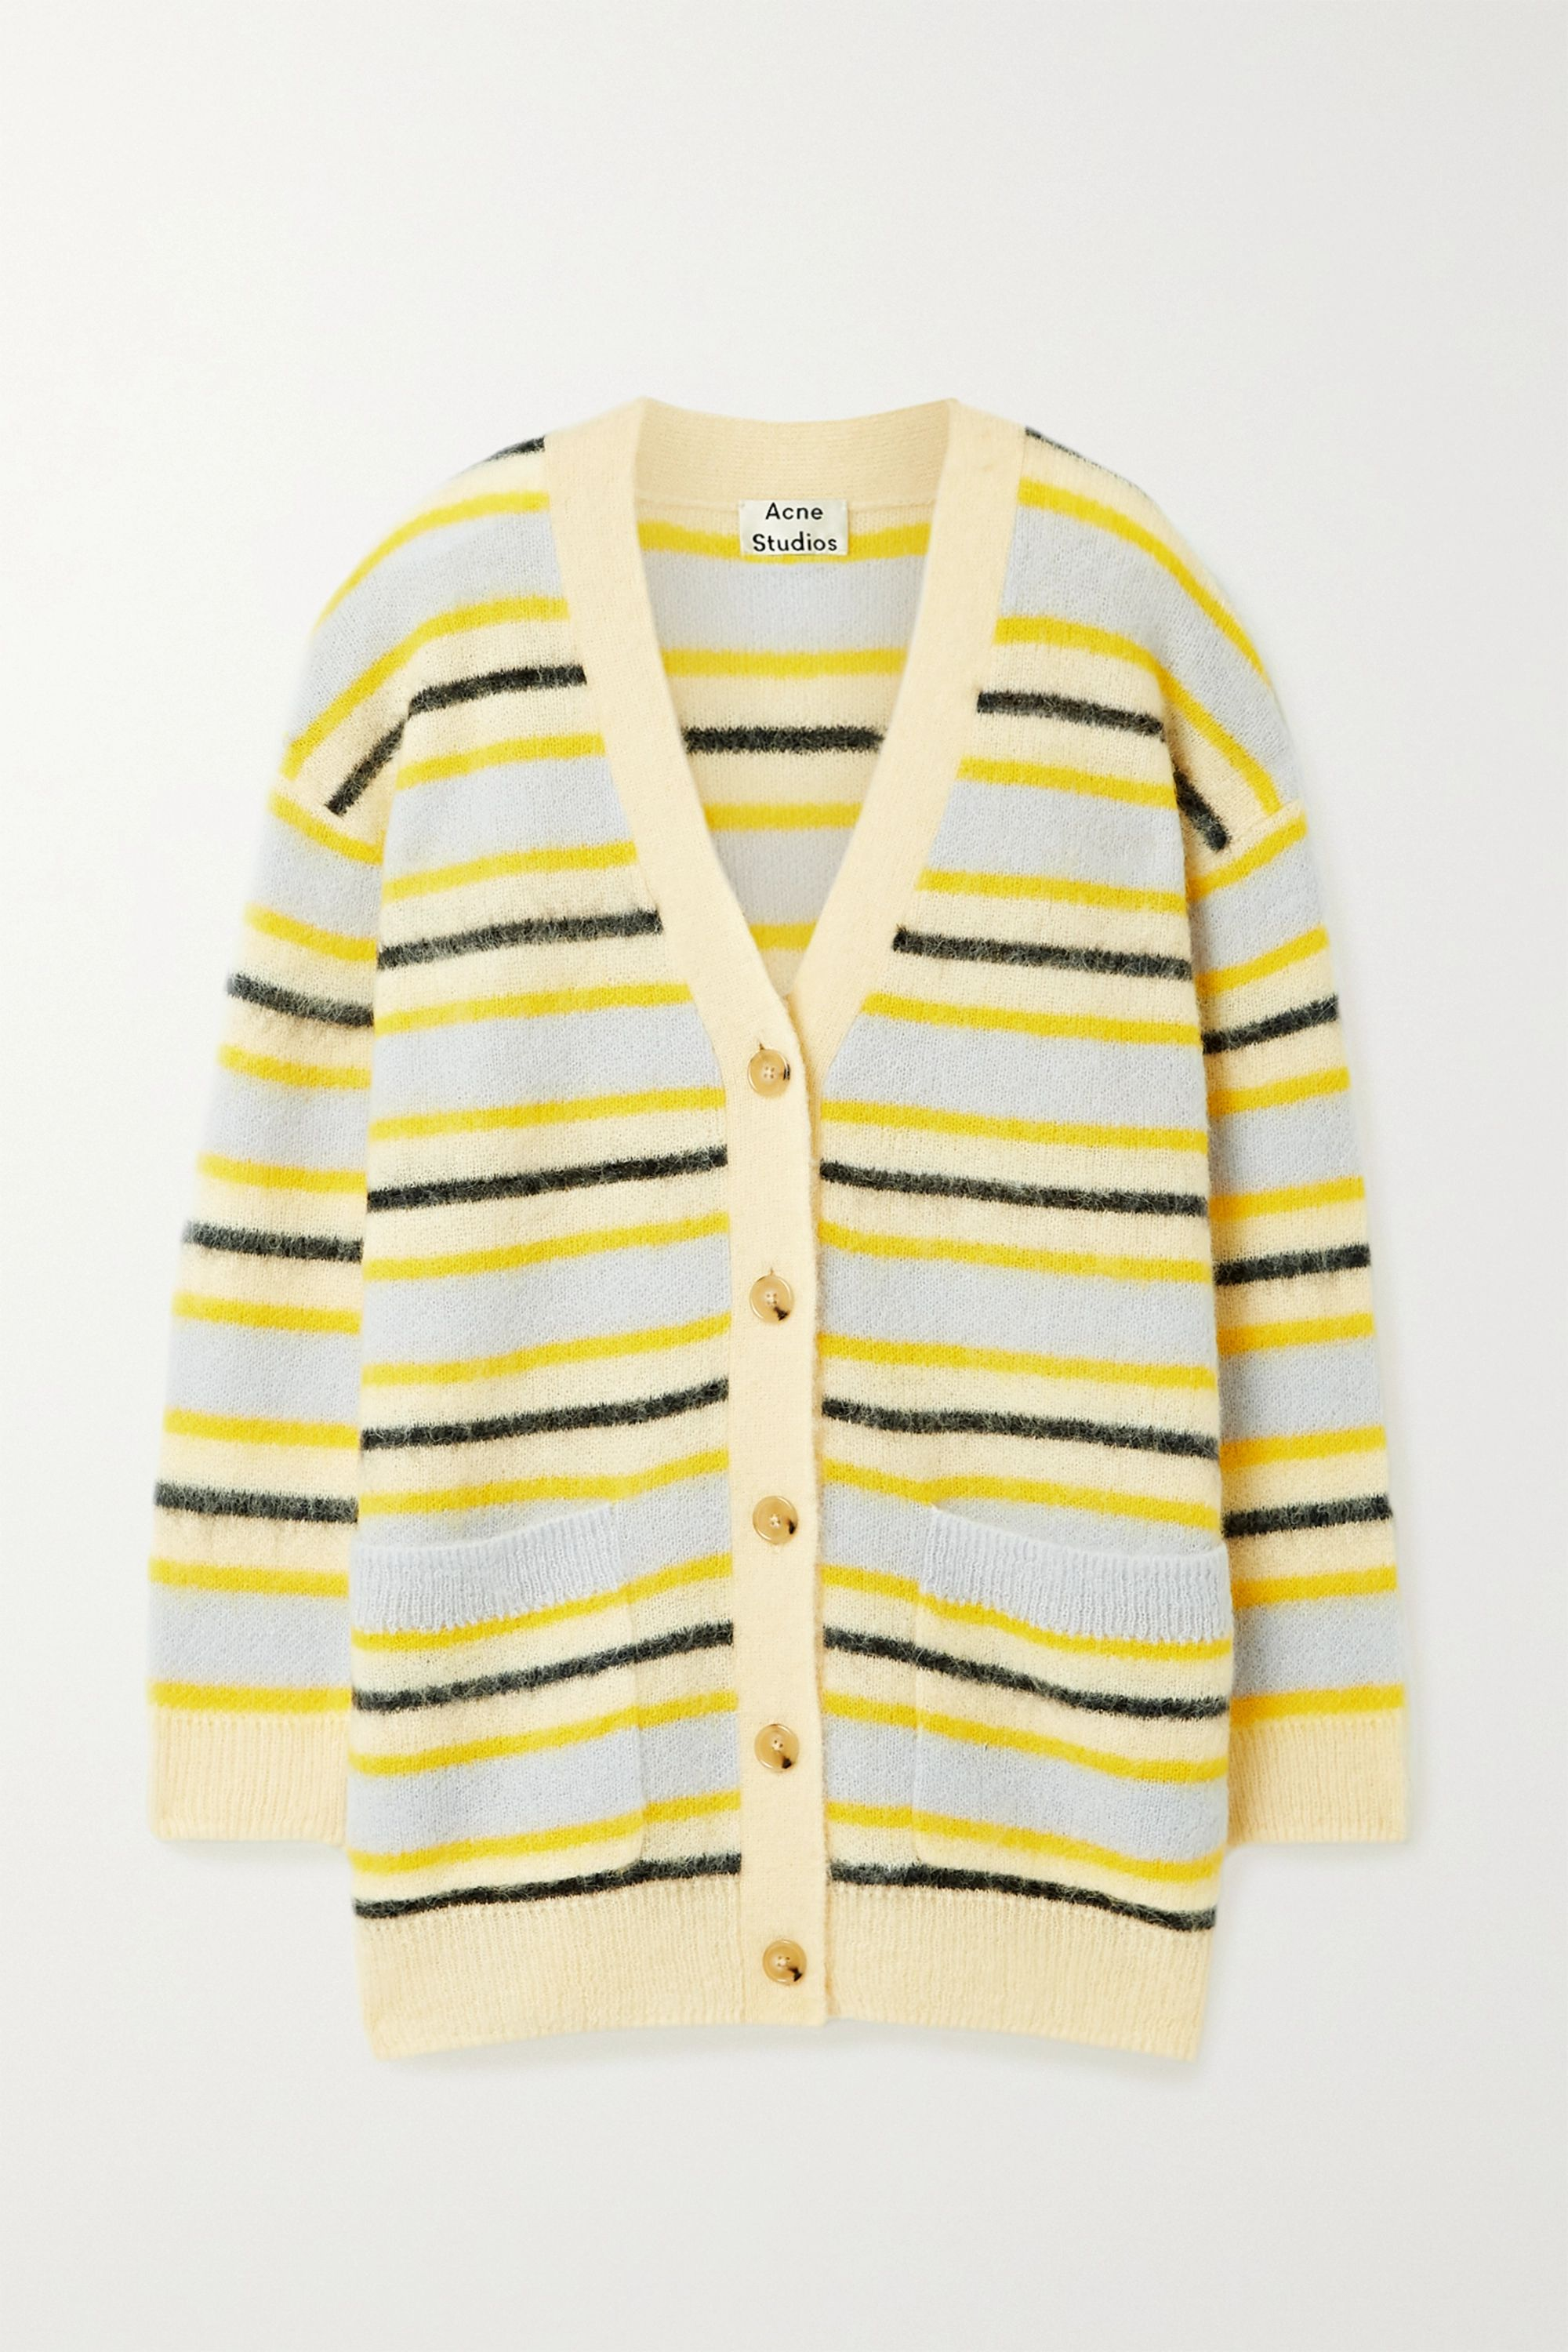 Acne Studios Striped knitted cardigan